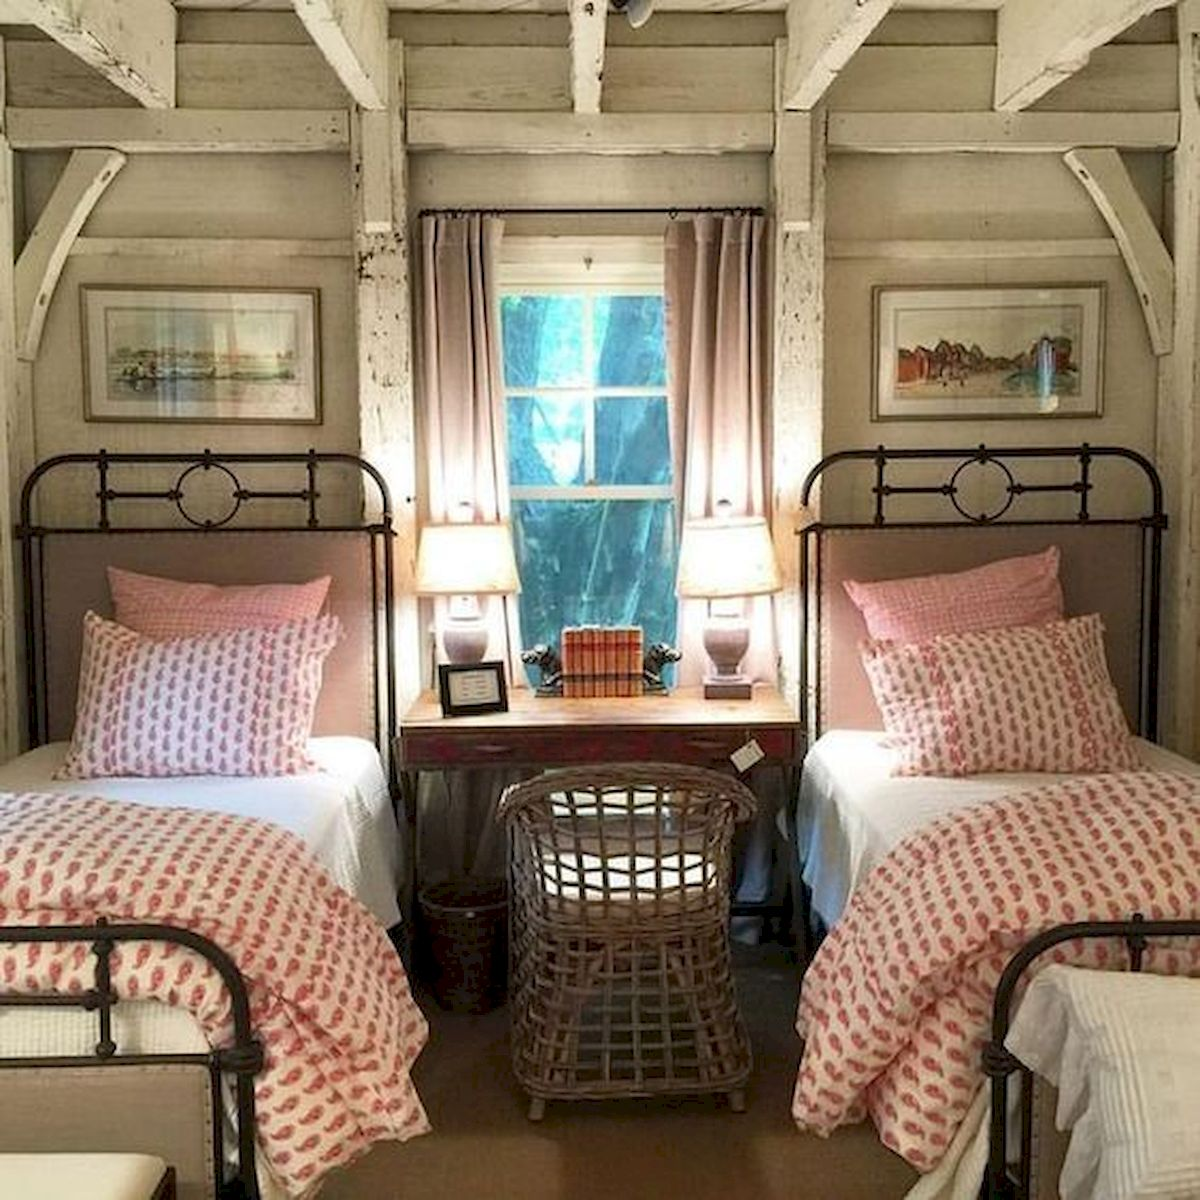 50 Modern Farmhouse Bedroom Decor Ideas Makes You Dream Beautiful In 2019 (17)